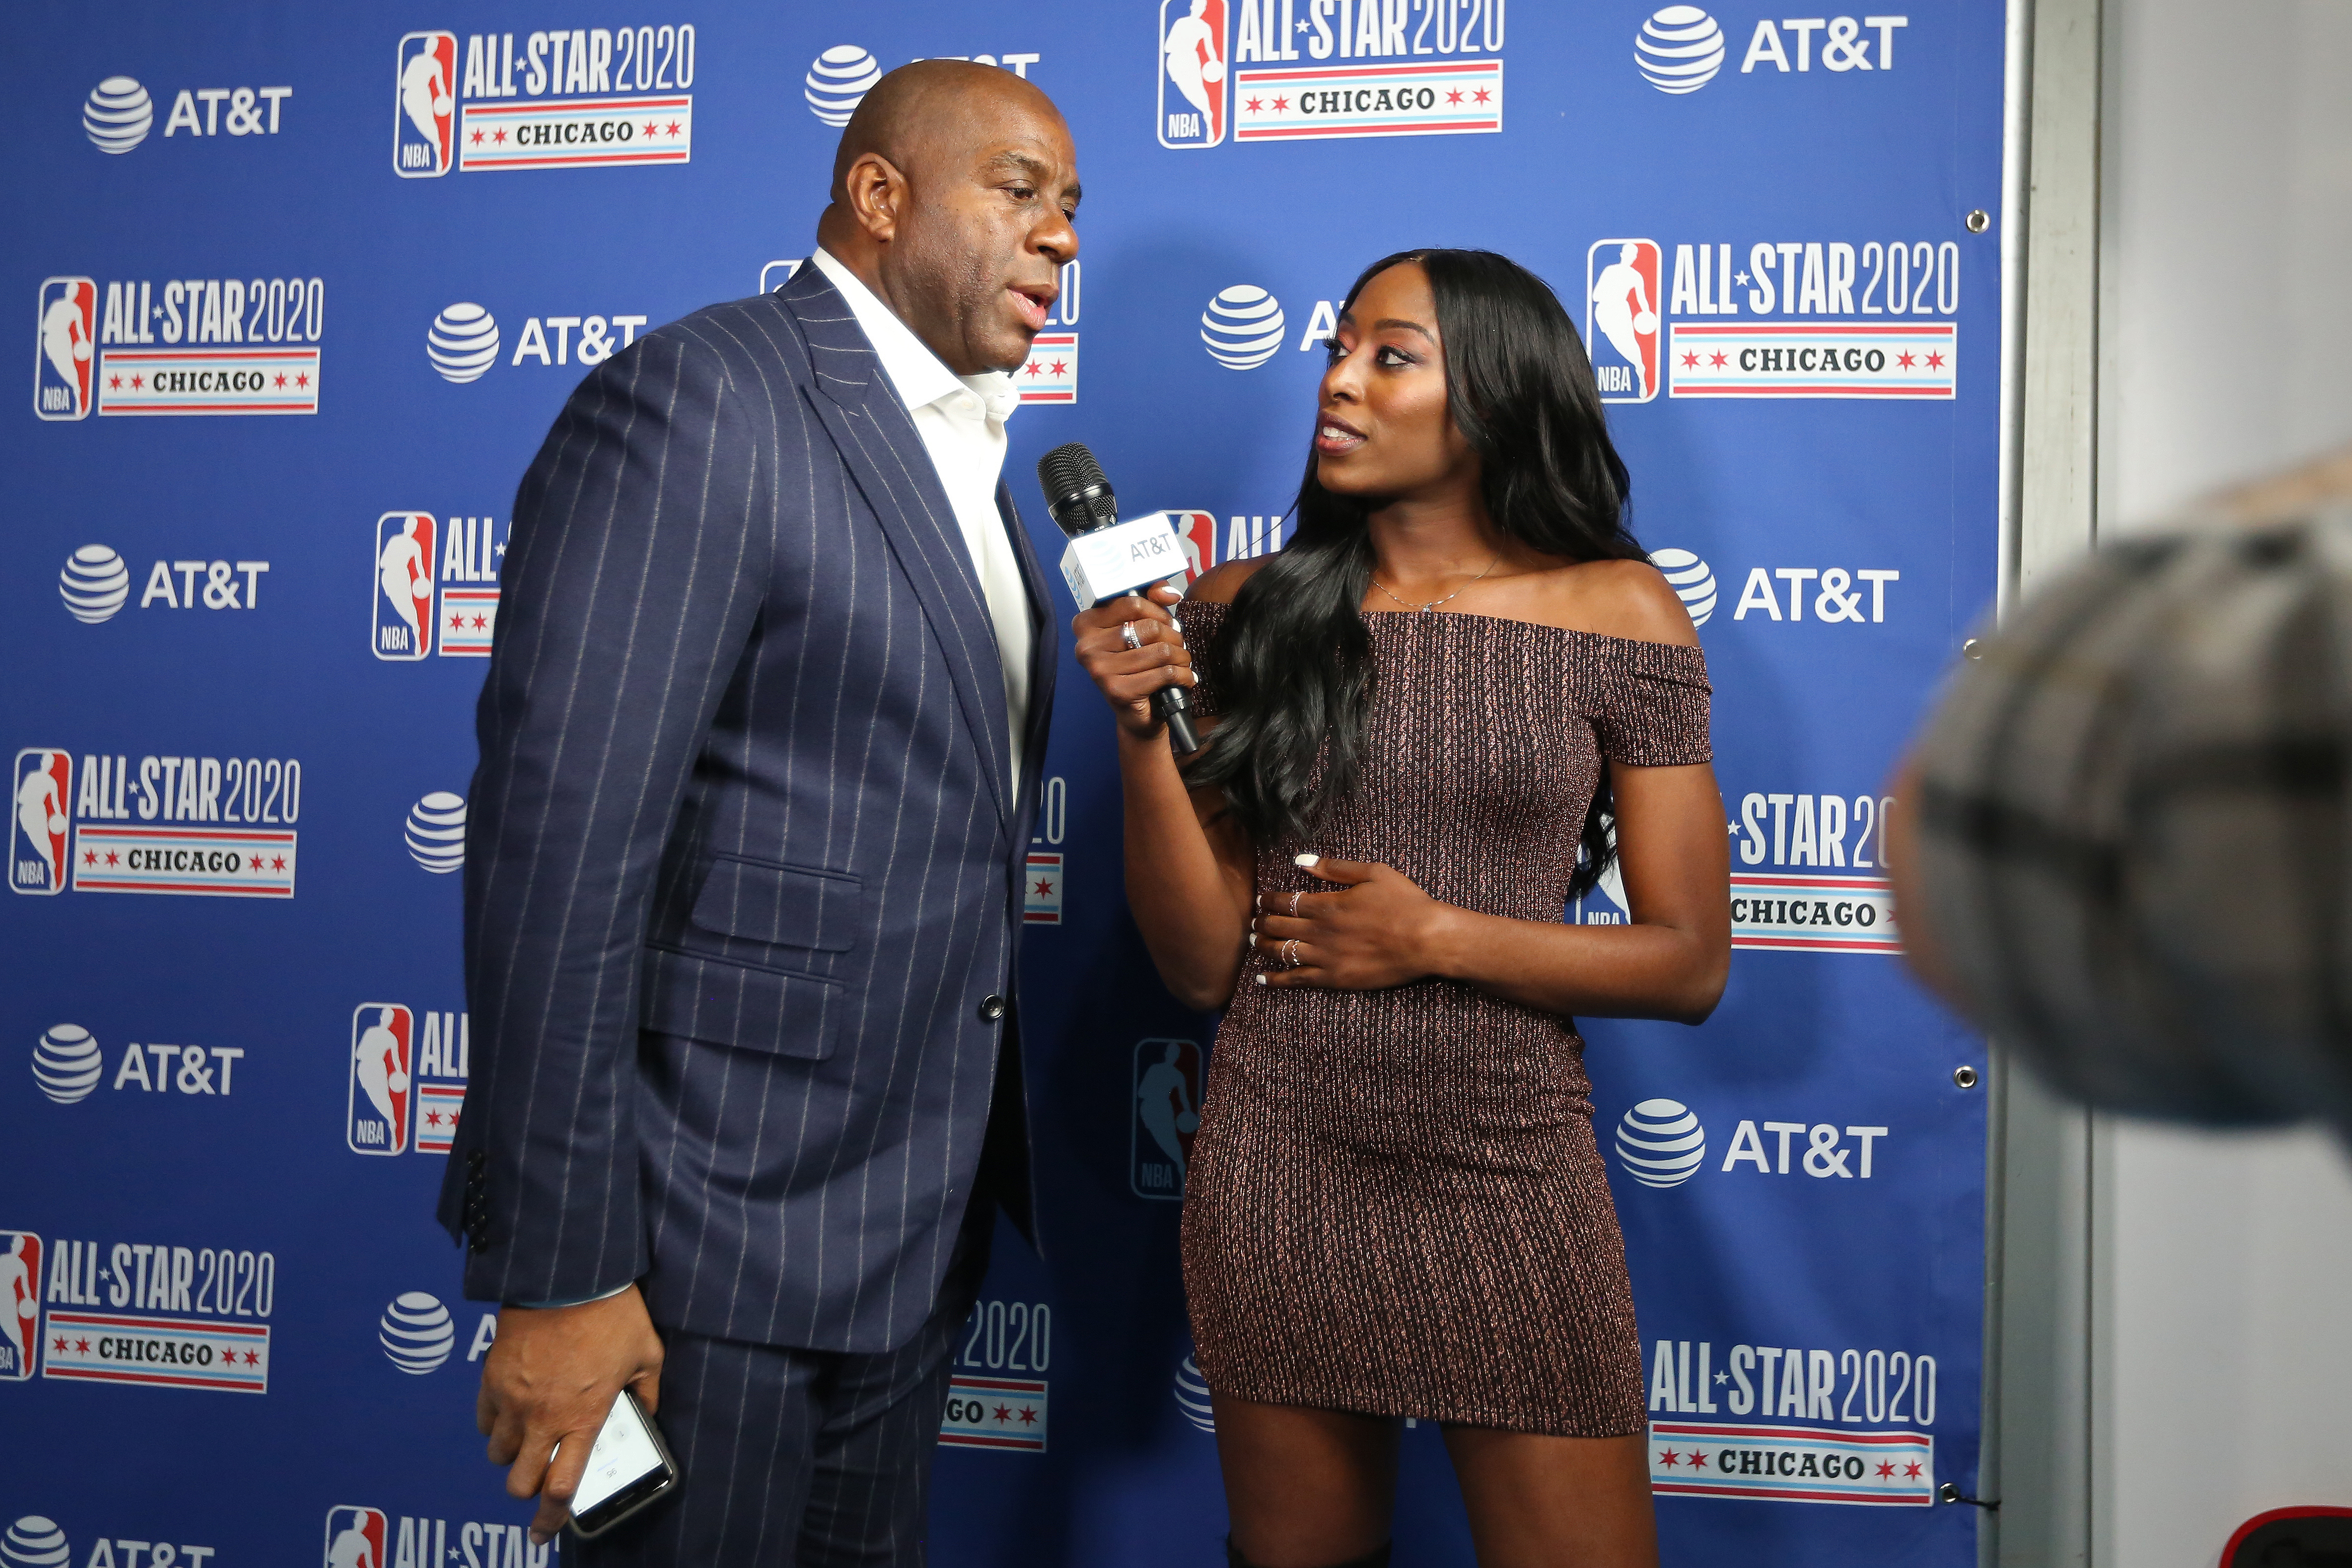 Chiney Ogwumike interviews NBA legend and Los Angeles Sparks co-owner Magic Johnson at 2020 NBA All-Star Weekend.